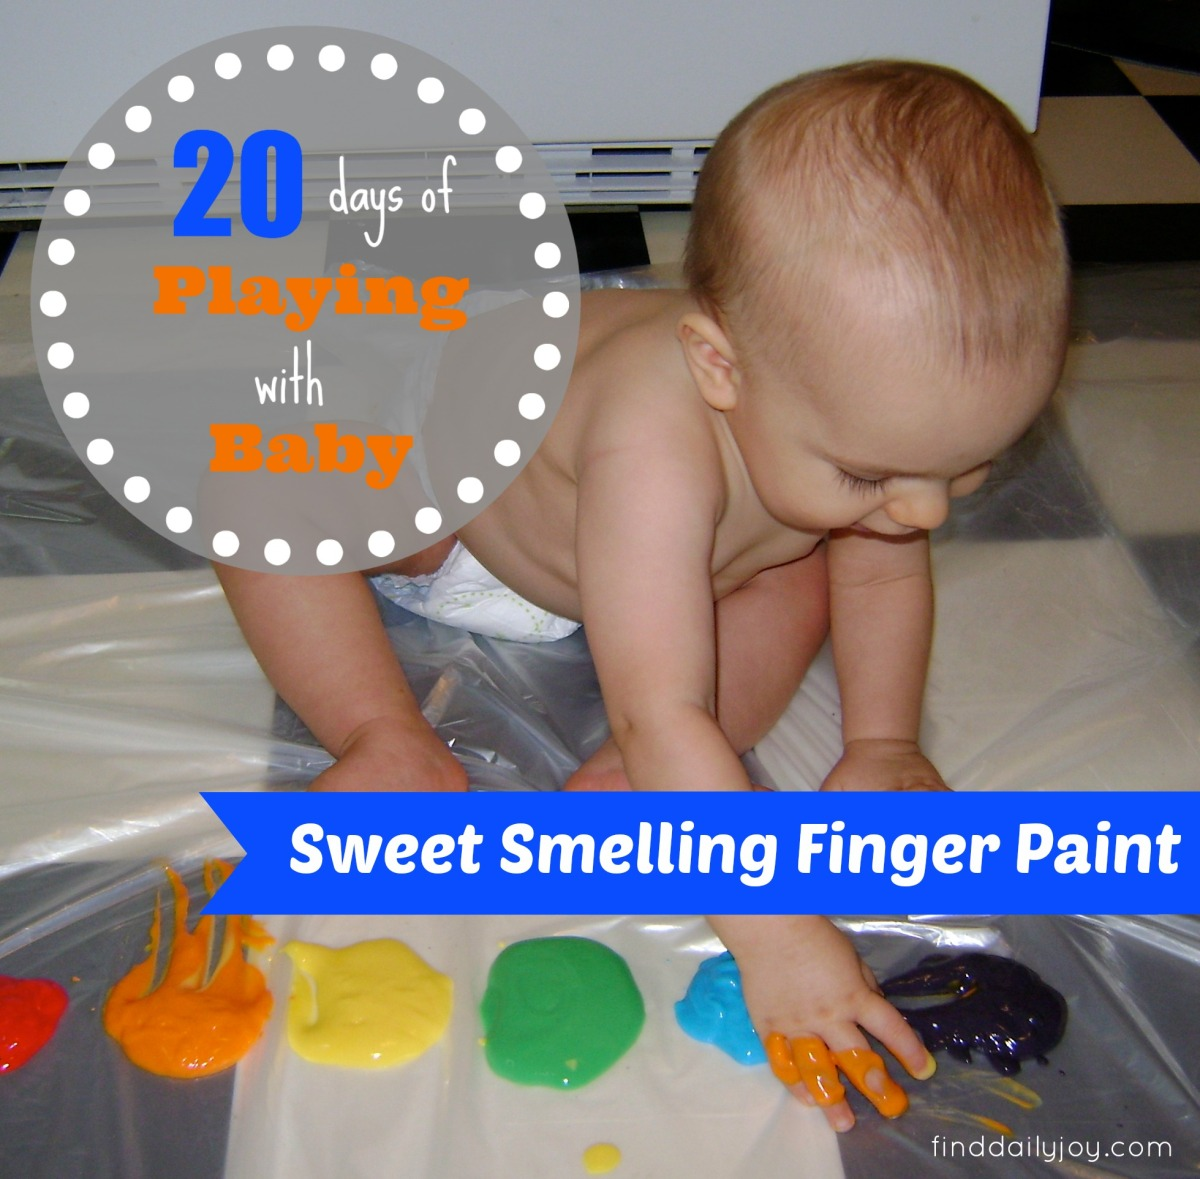 Sweet Smelling Finger Paint {Playing With Baby, Day 13}